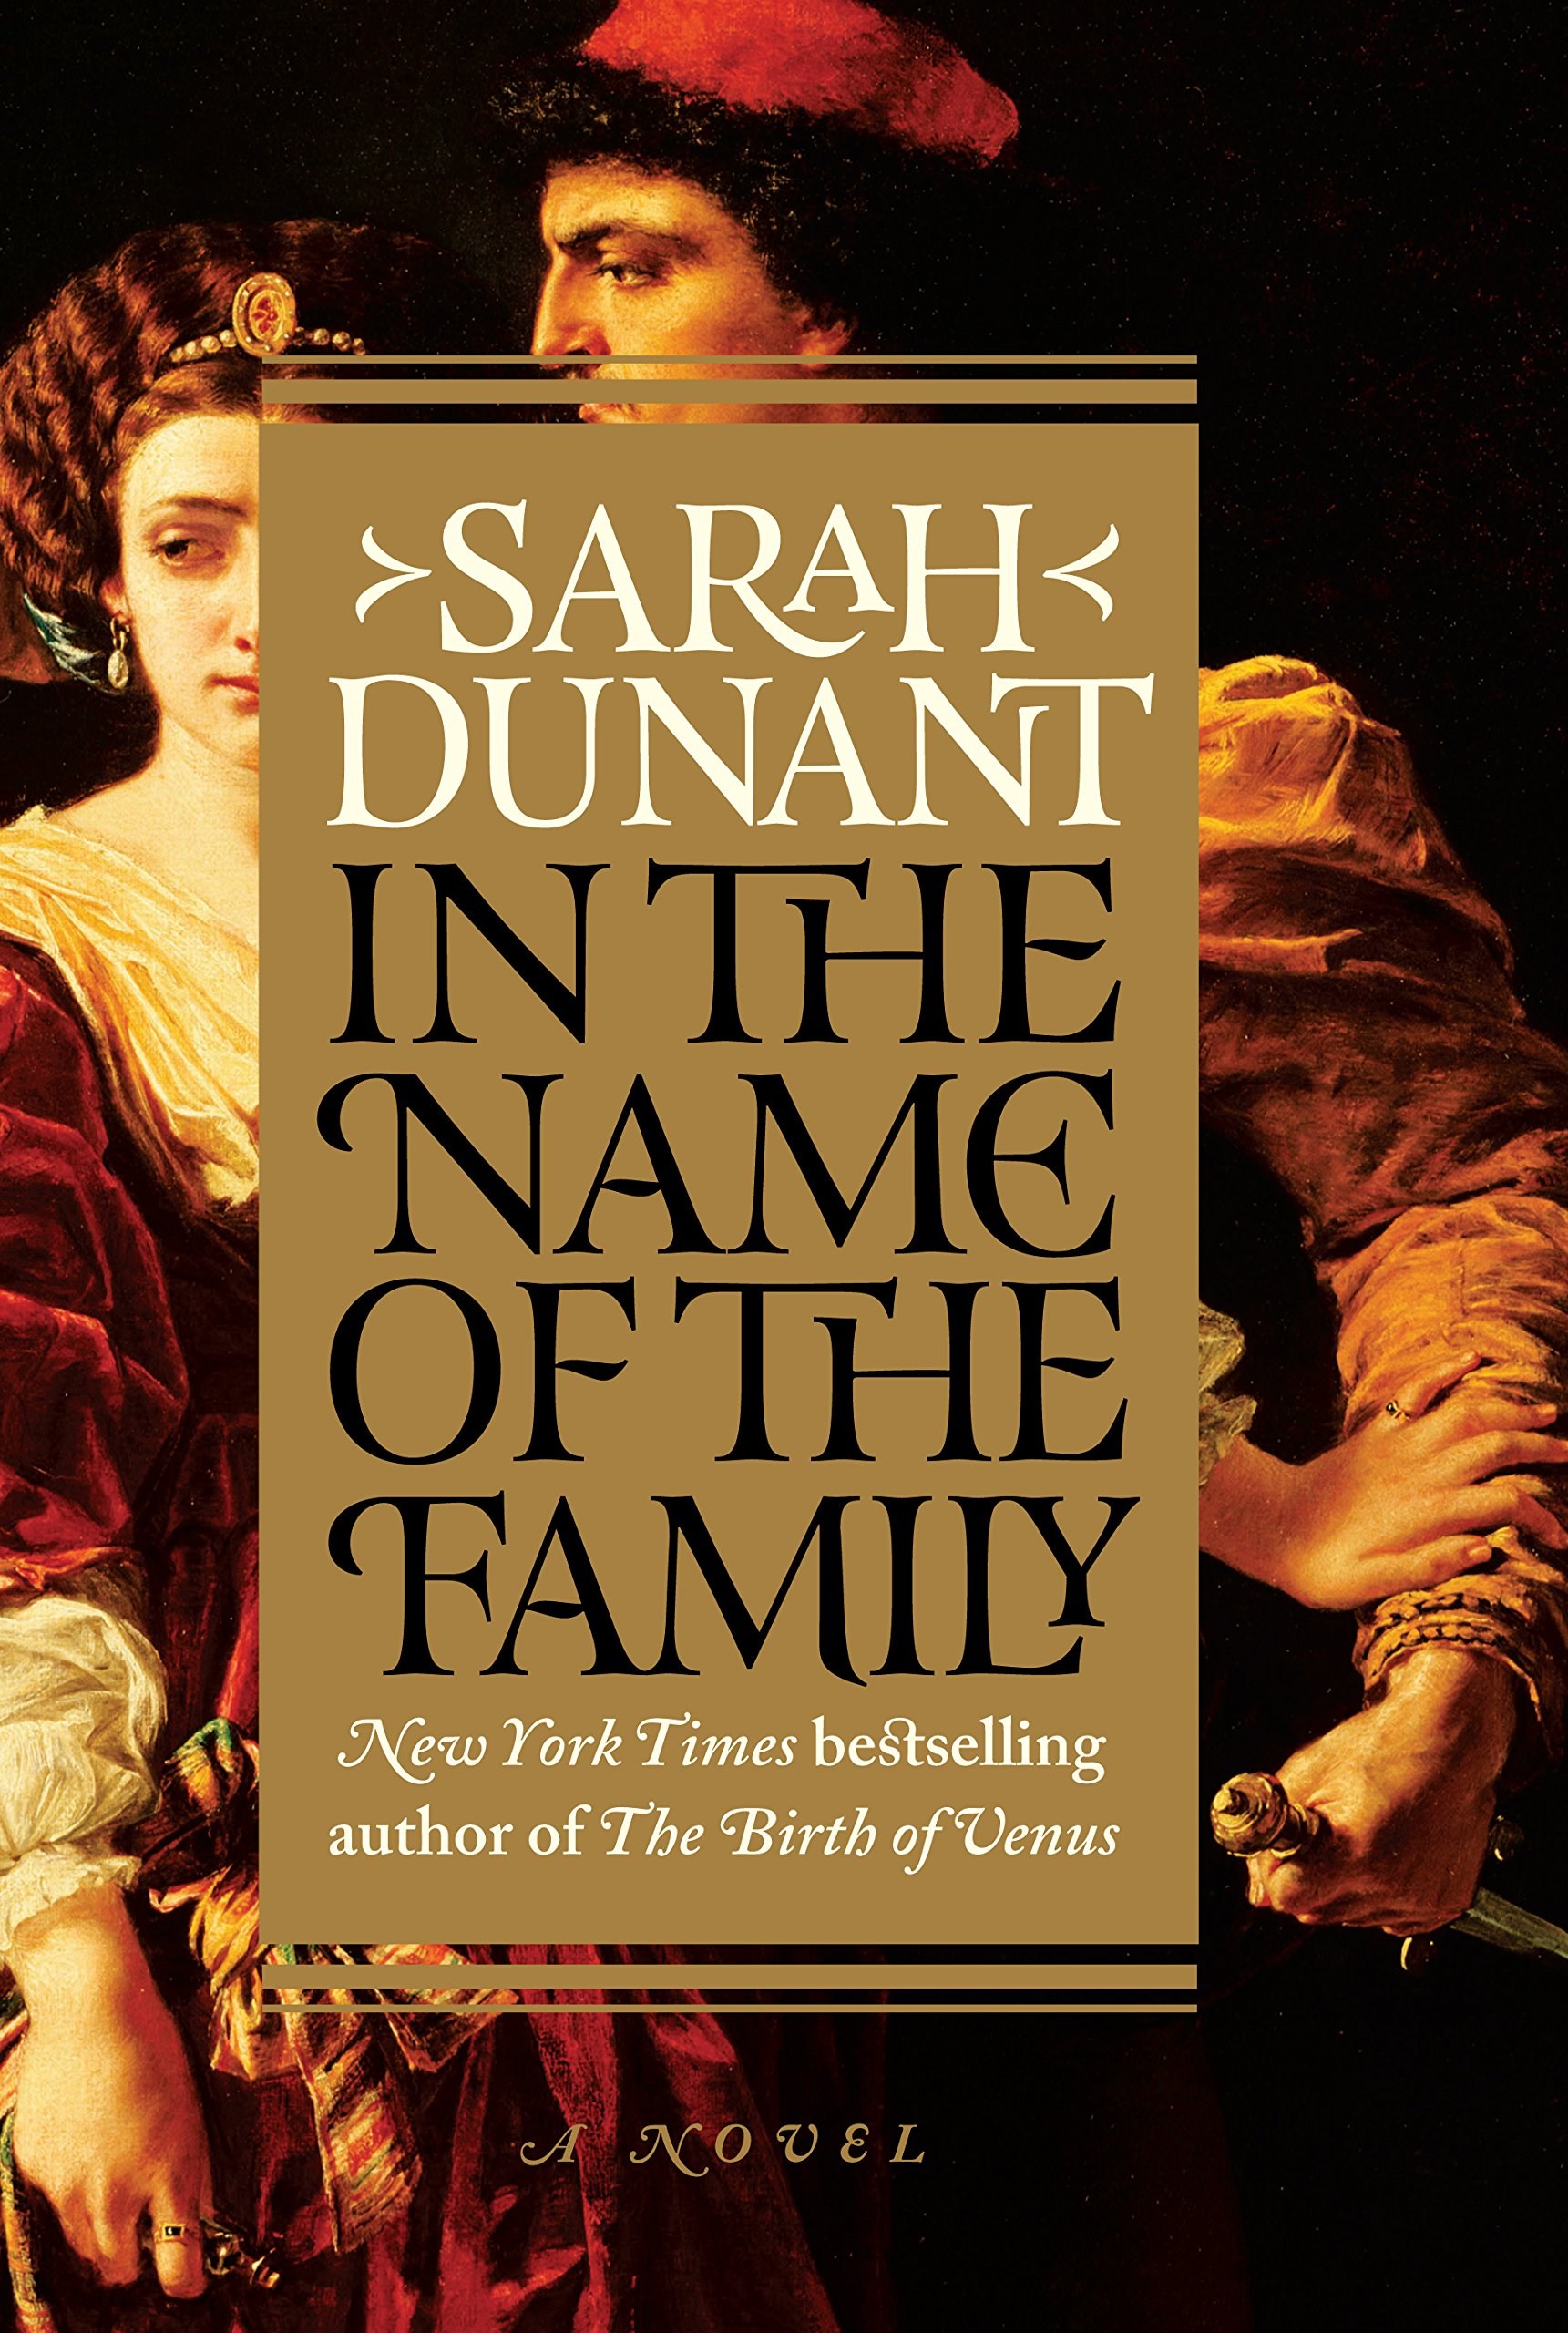 Amazon: In The Name Of The Family (9781410495808): Sarah Dunant: Books